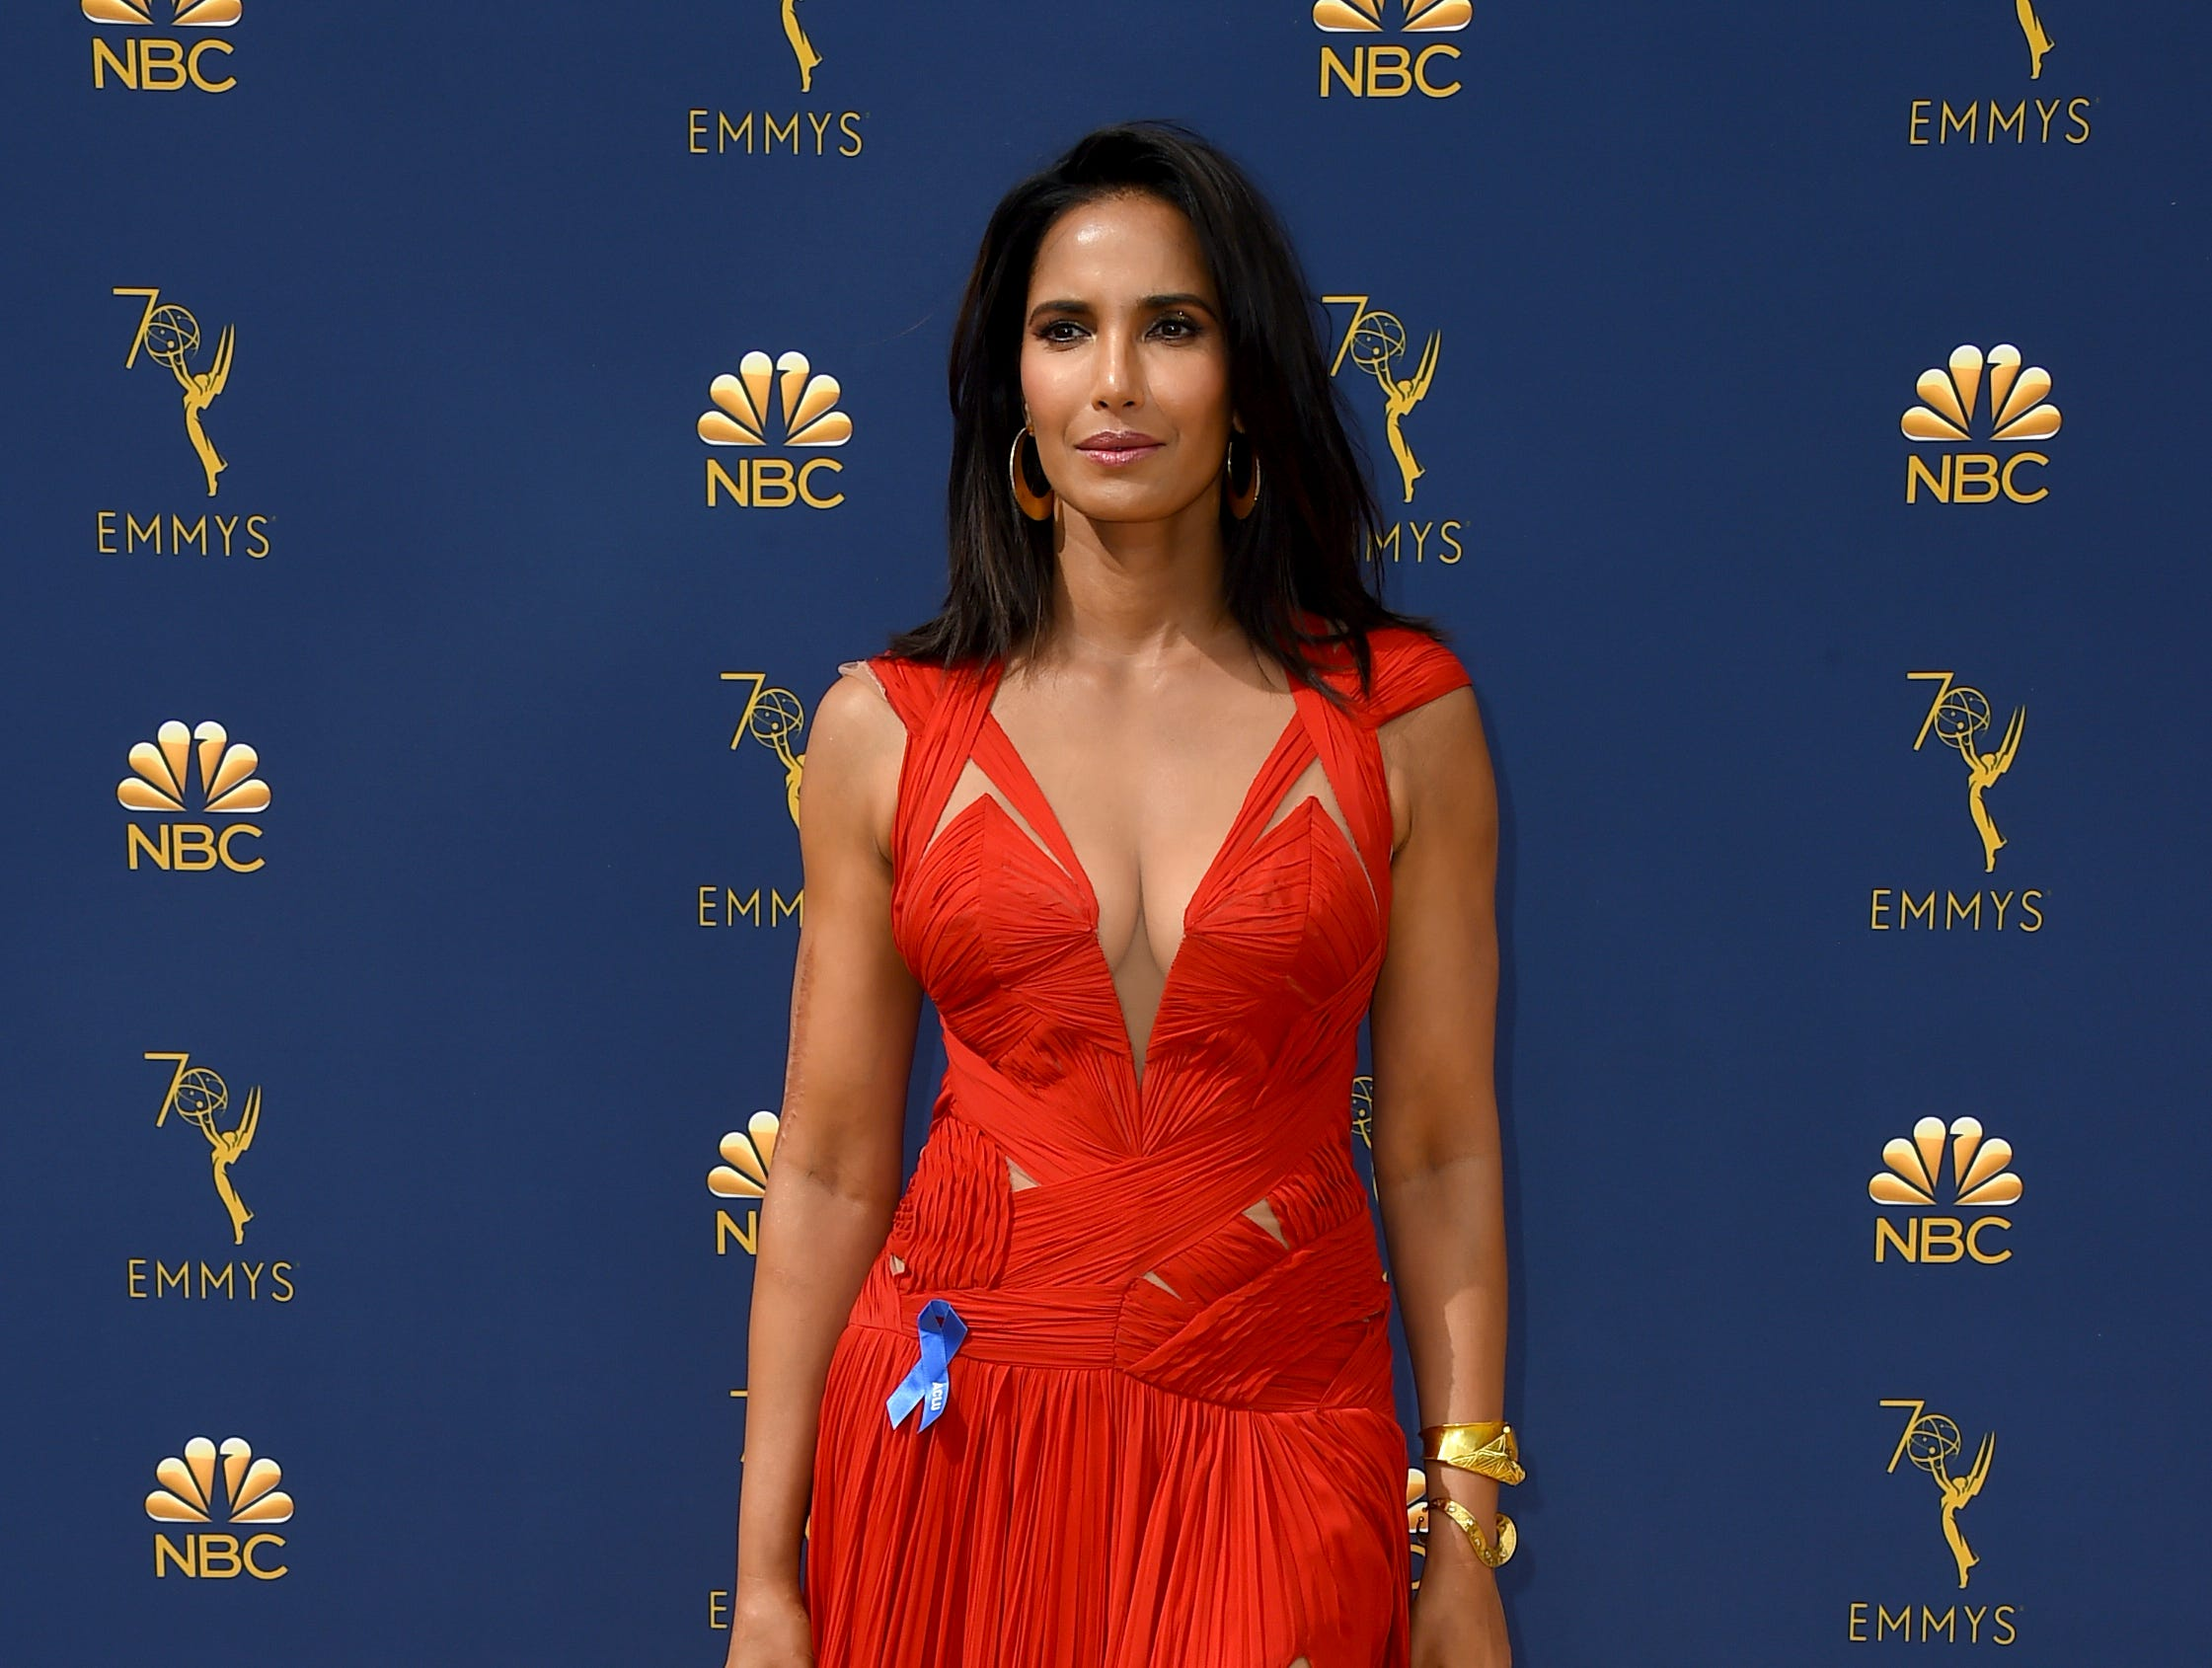 Padma Lakshmi arrives at the 70th Primetime Emmy Awards on Monday, Sept. 17, 2018, at the Microsoft Theater in Los Angeles.